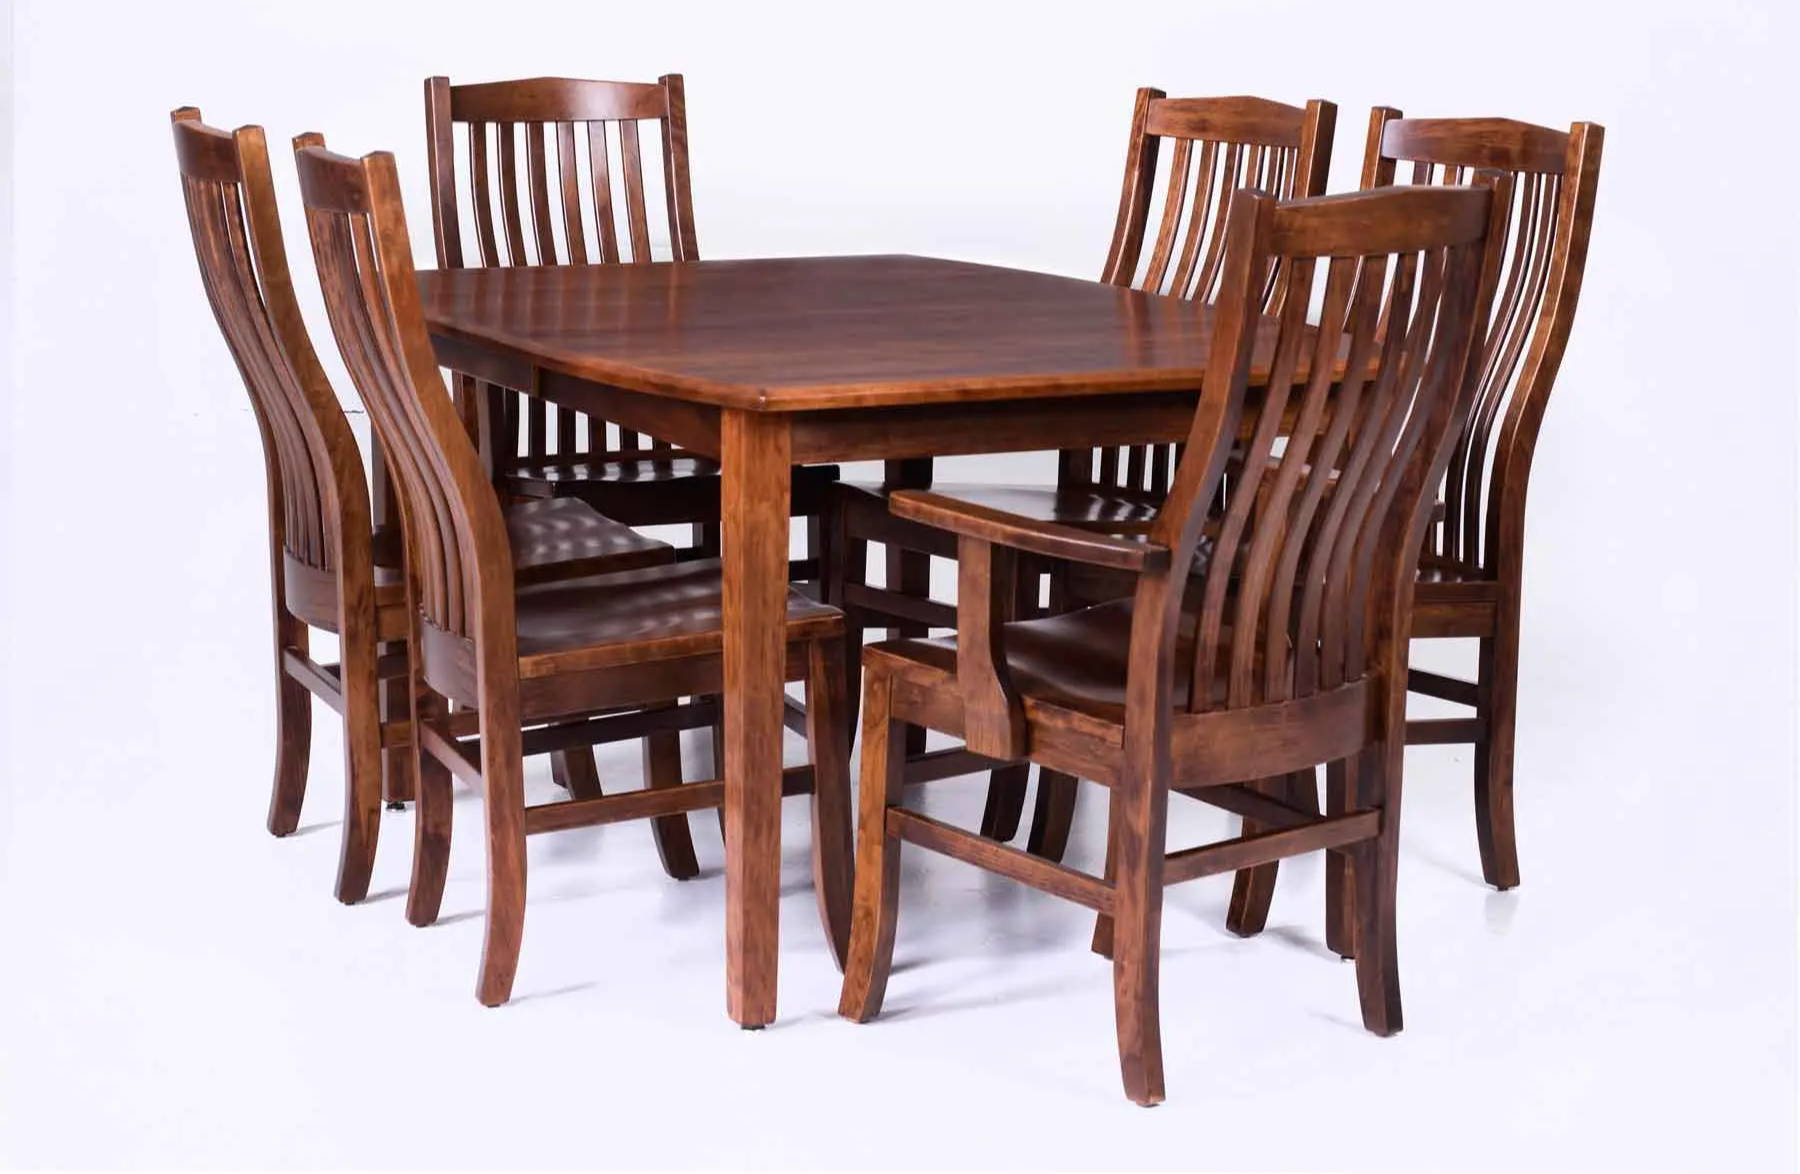 Counter Height Tables Vs. Dining Height Tables (Which Is Best For Me?)